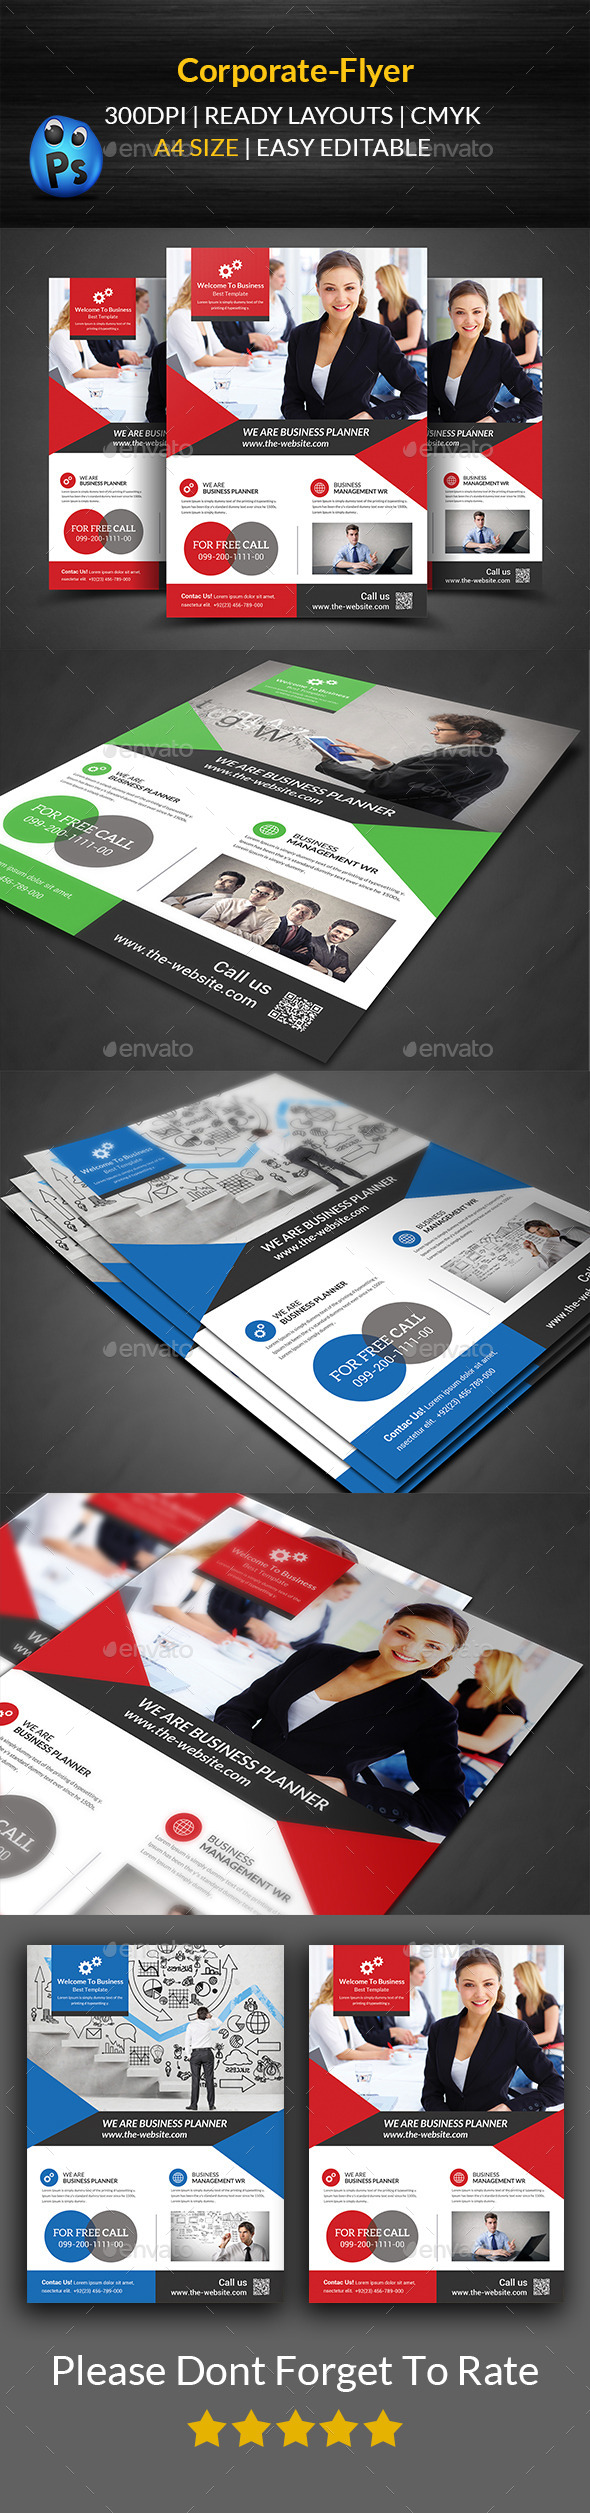 GraphicRiver Corporate Flyer Template 11860830